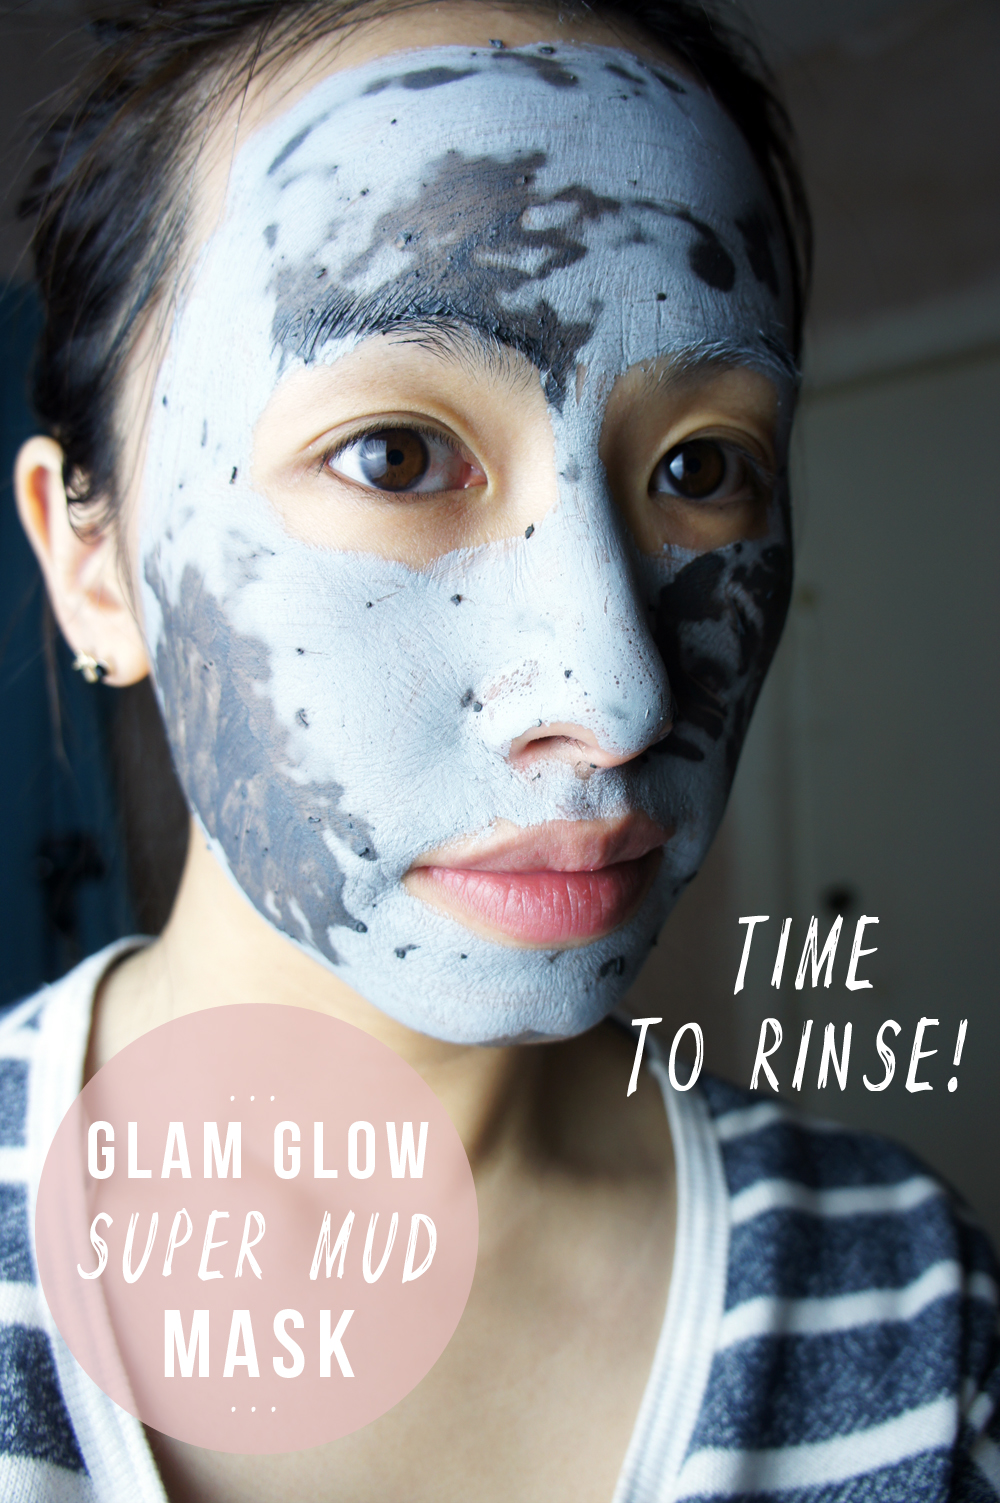 GLAM GLOW SUPER MUD REVIEW & RESULTS! | KAKA BEAUTY BLOG